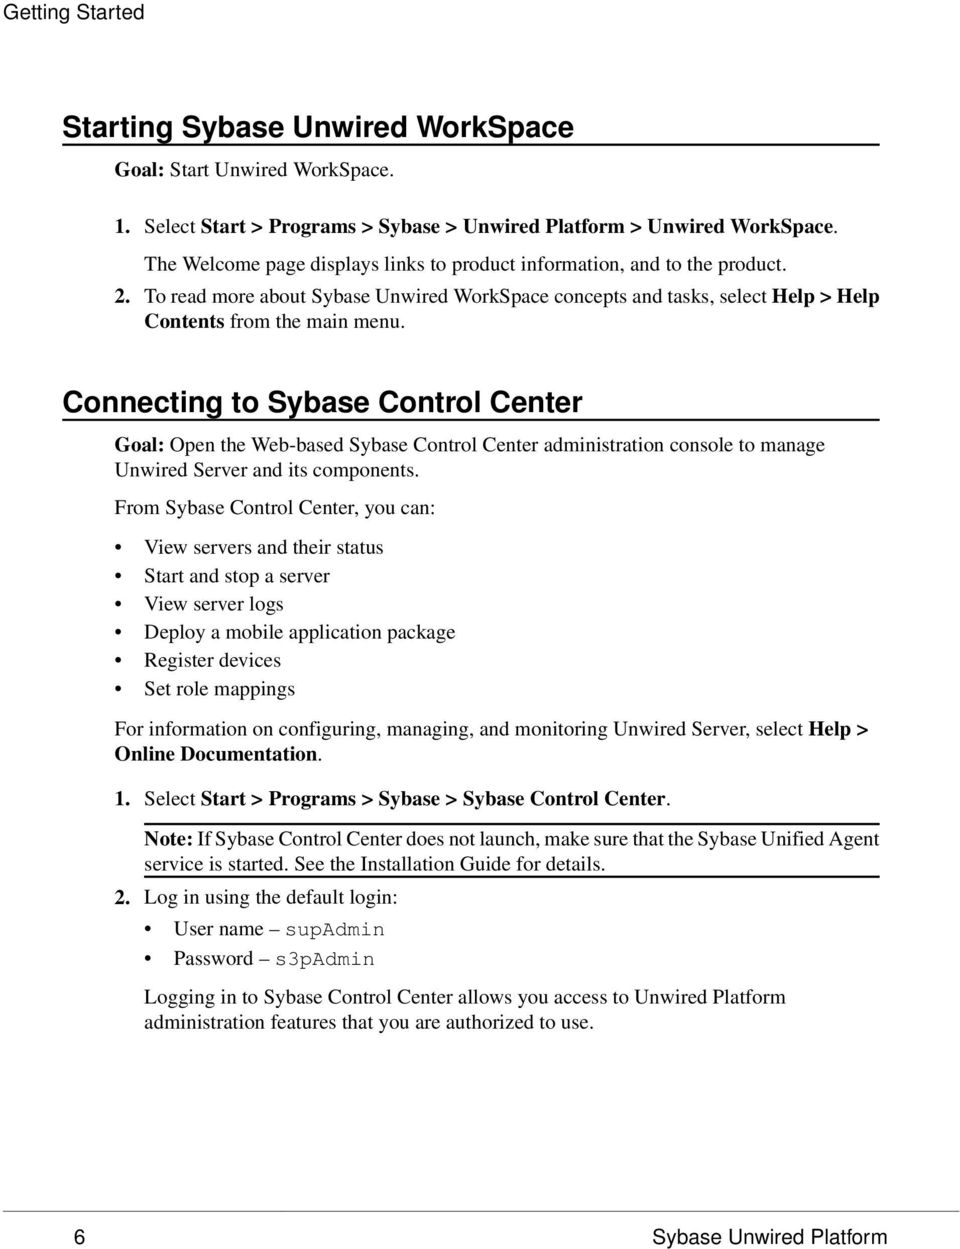 Connecting to Sybase Control Center Goal: Open the Web-based Sybase Control Center administration console to manage Unwired Server and its components.